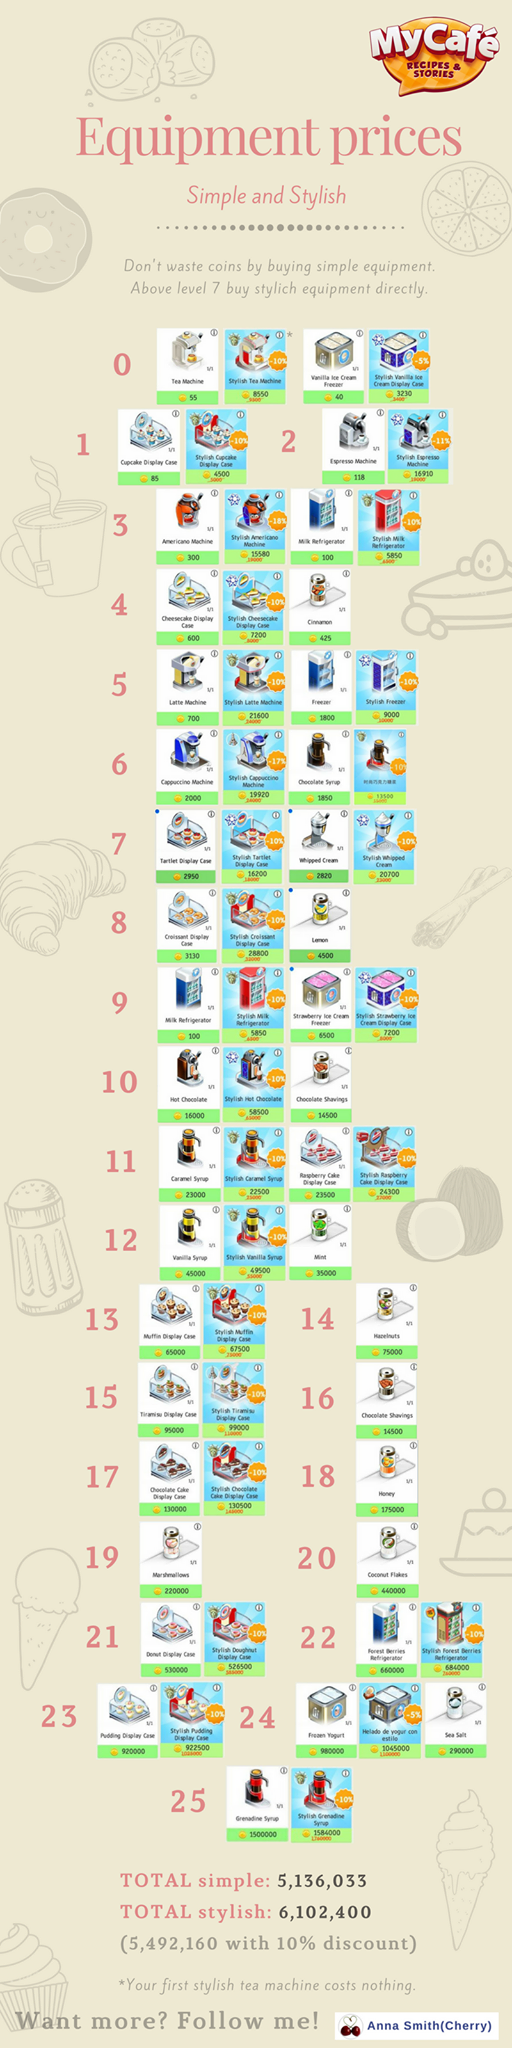 My Cafe Game Equipment Prices #mycafegame #mycafeprices